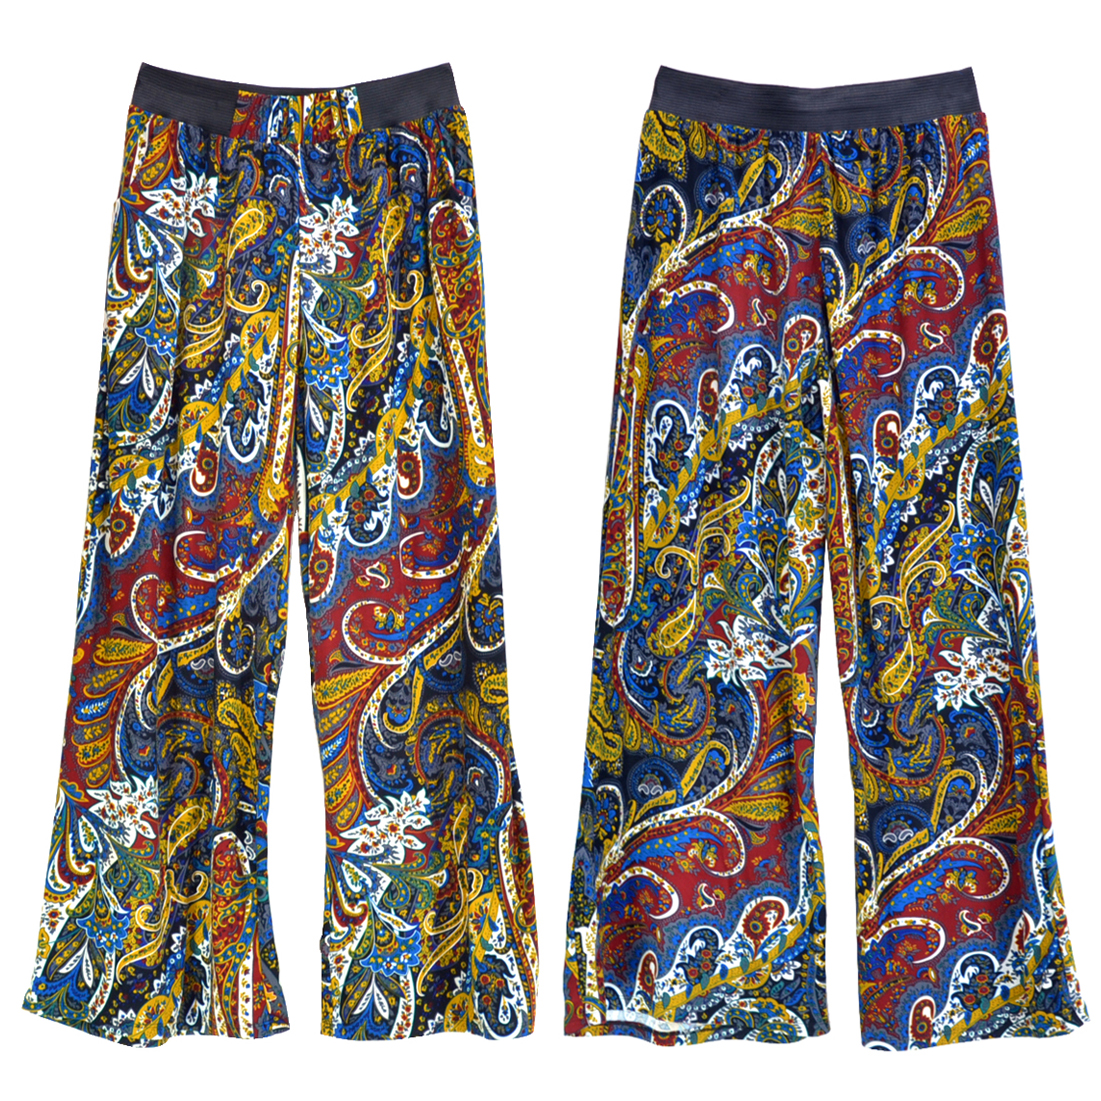 Paisely Print Palazzo Pants with Elastic Waist